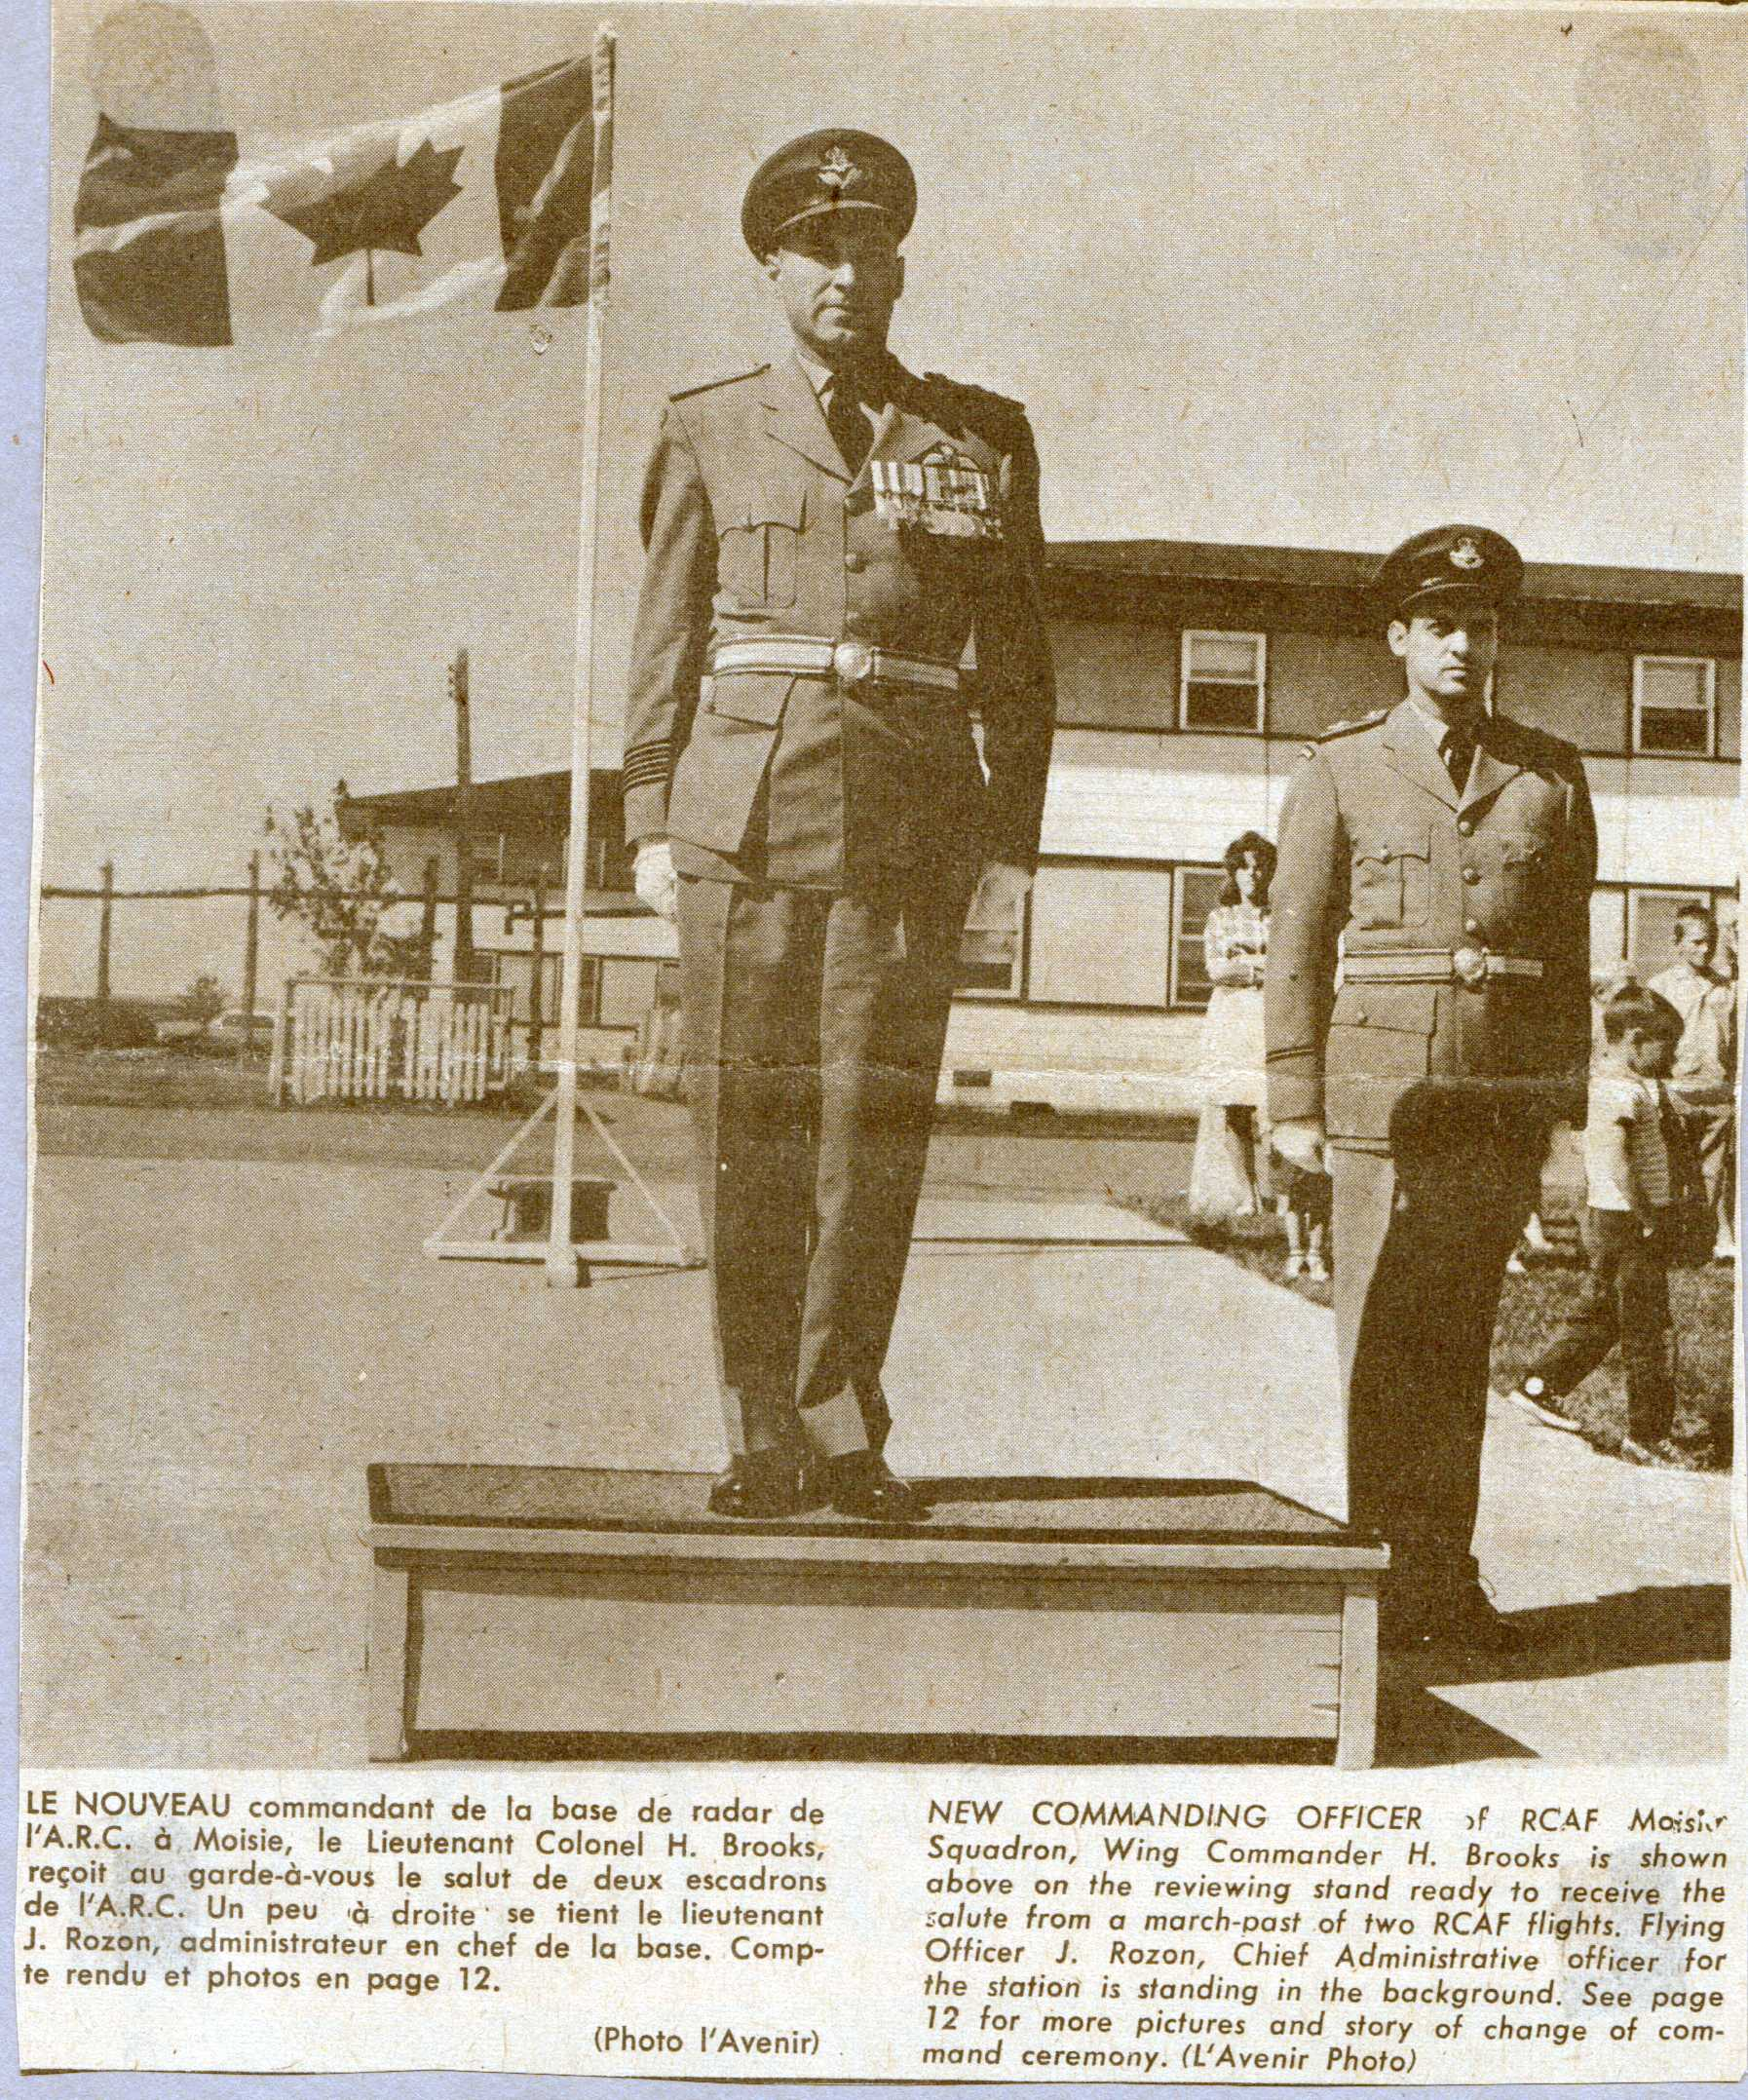 Sept Iles newspaper coverage of Hubert Brooks assuming command of RCAF Moisie 3